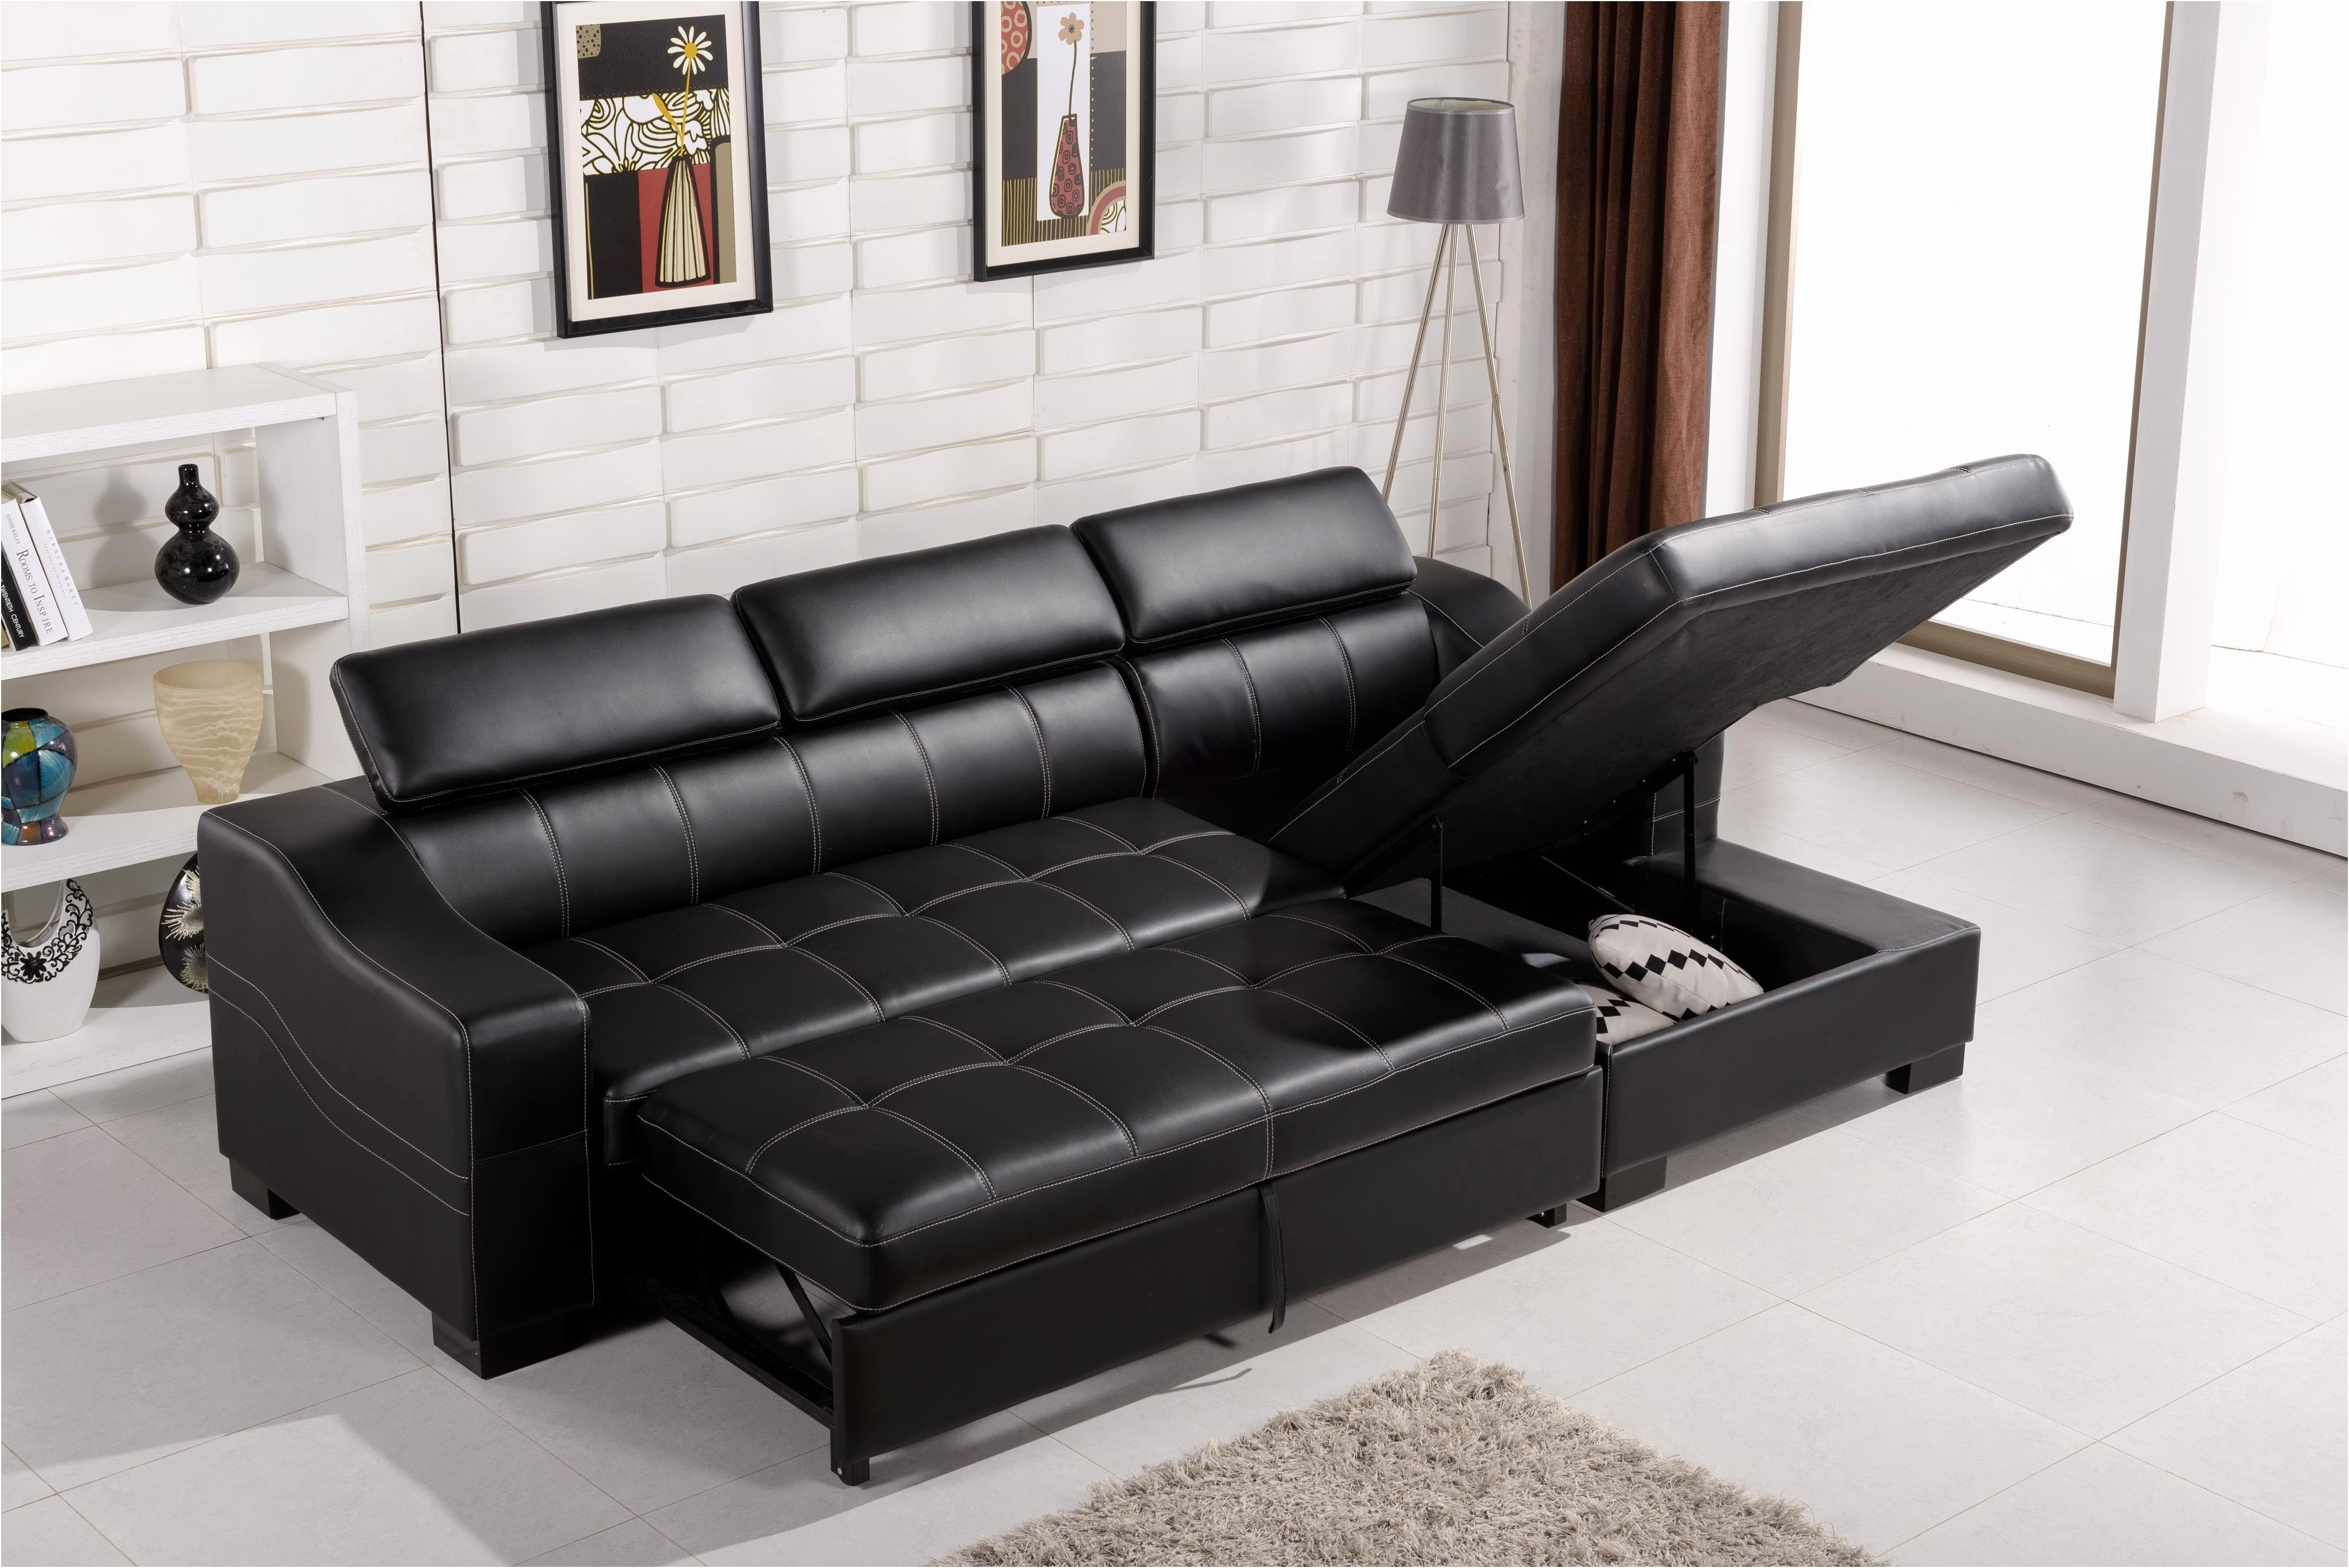 Well Known Victoria Bc Sectional Sofas Within Sofa : Sofa Chairs Victoria Bc Sofa 7 Chair Company Sofa And (View 8 of 20)